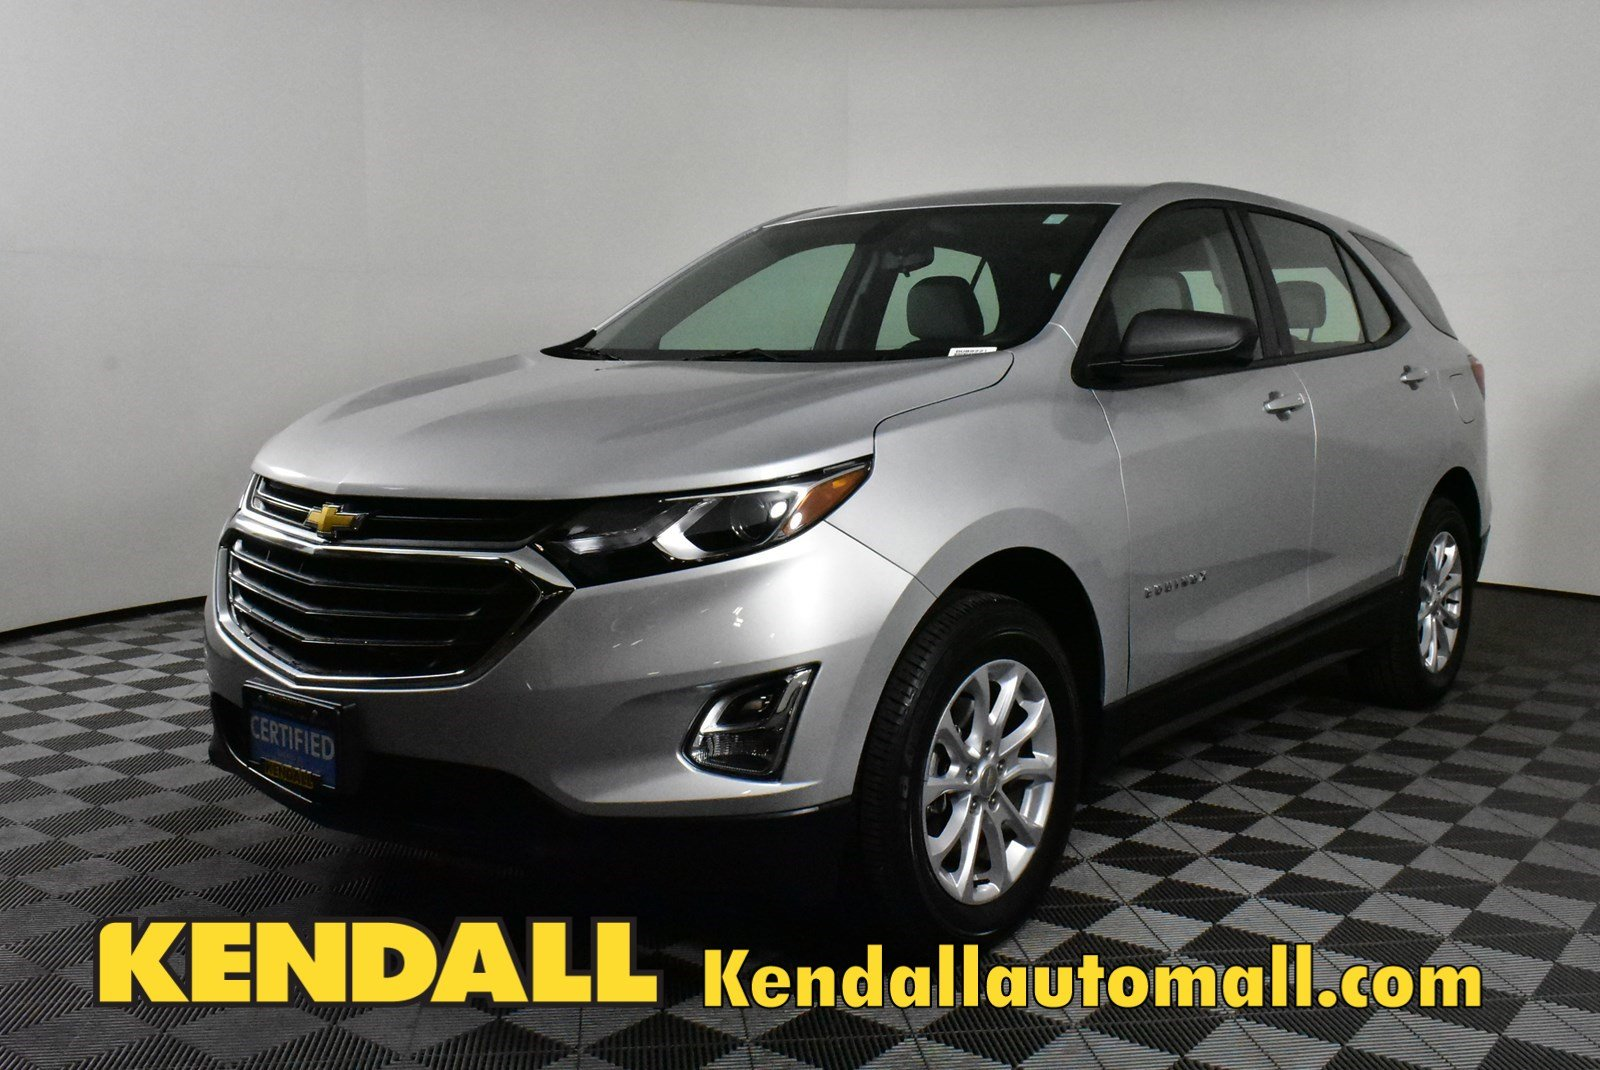 Certified Pre Owned 2018 Chevrolet Equinox Ls In Nampa Du89221 Kendall At The Idaho Center Auto Mall